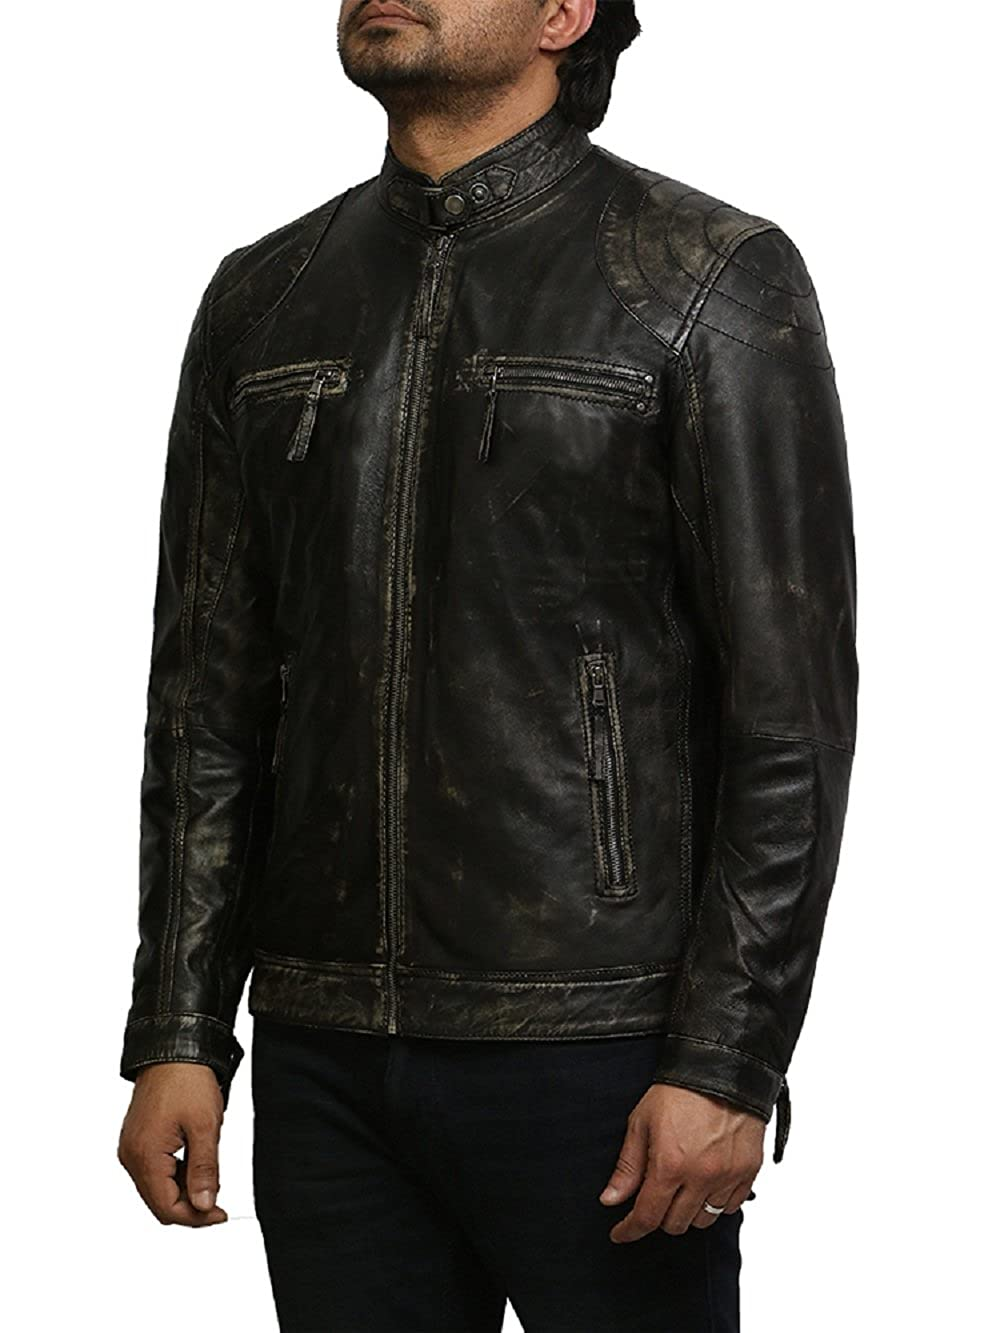 Brandslock Mens Leather Biker Jacket Genuine Lambskin